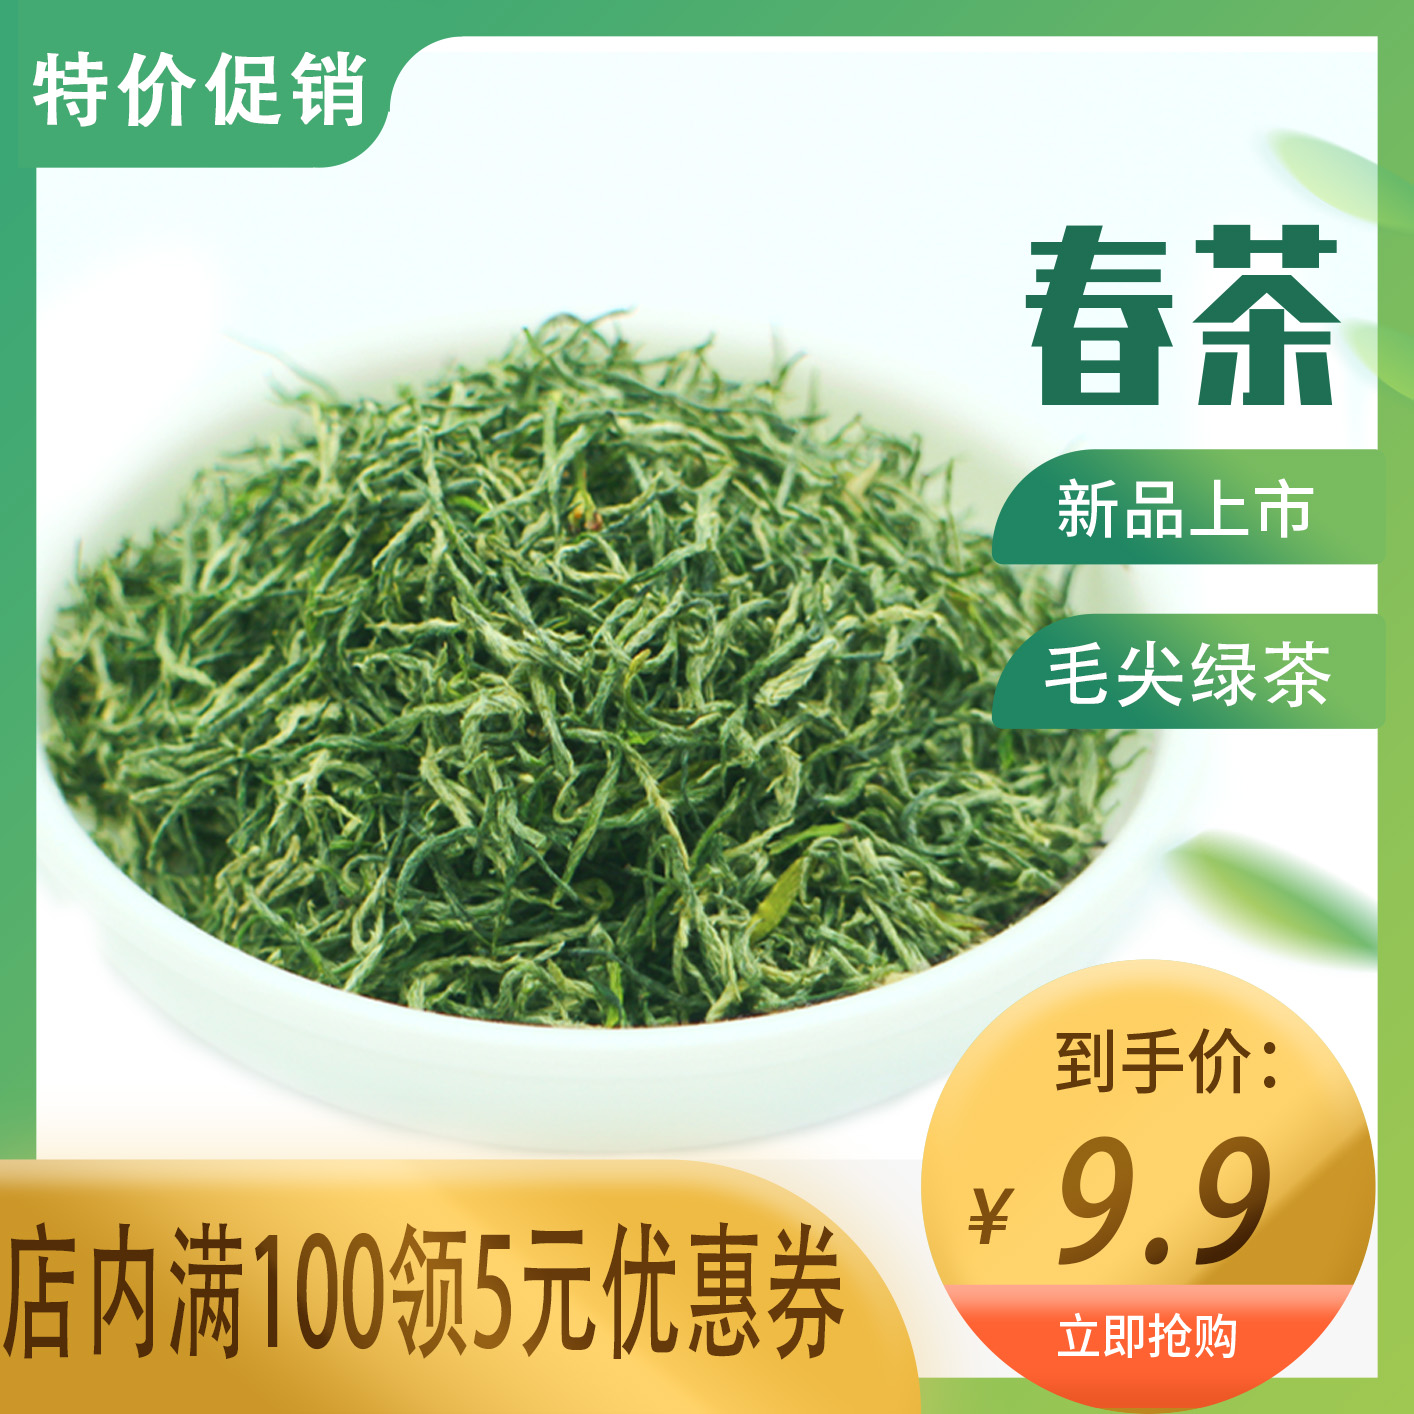 Green tea Xinyang Maojian Luzhou flavor only needs a special promotion of ? 9.9, 100g package mail home